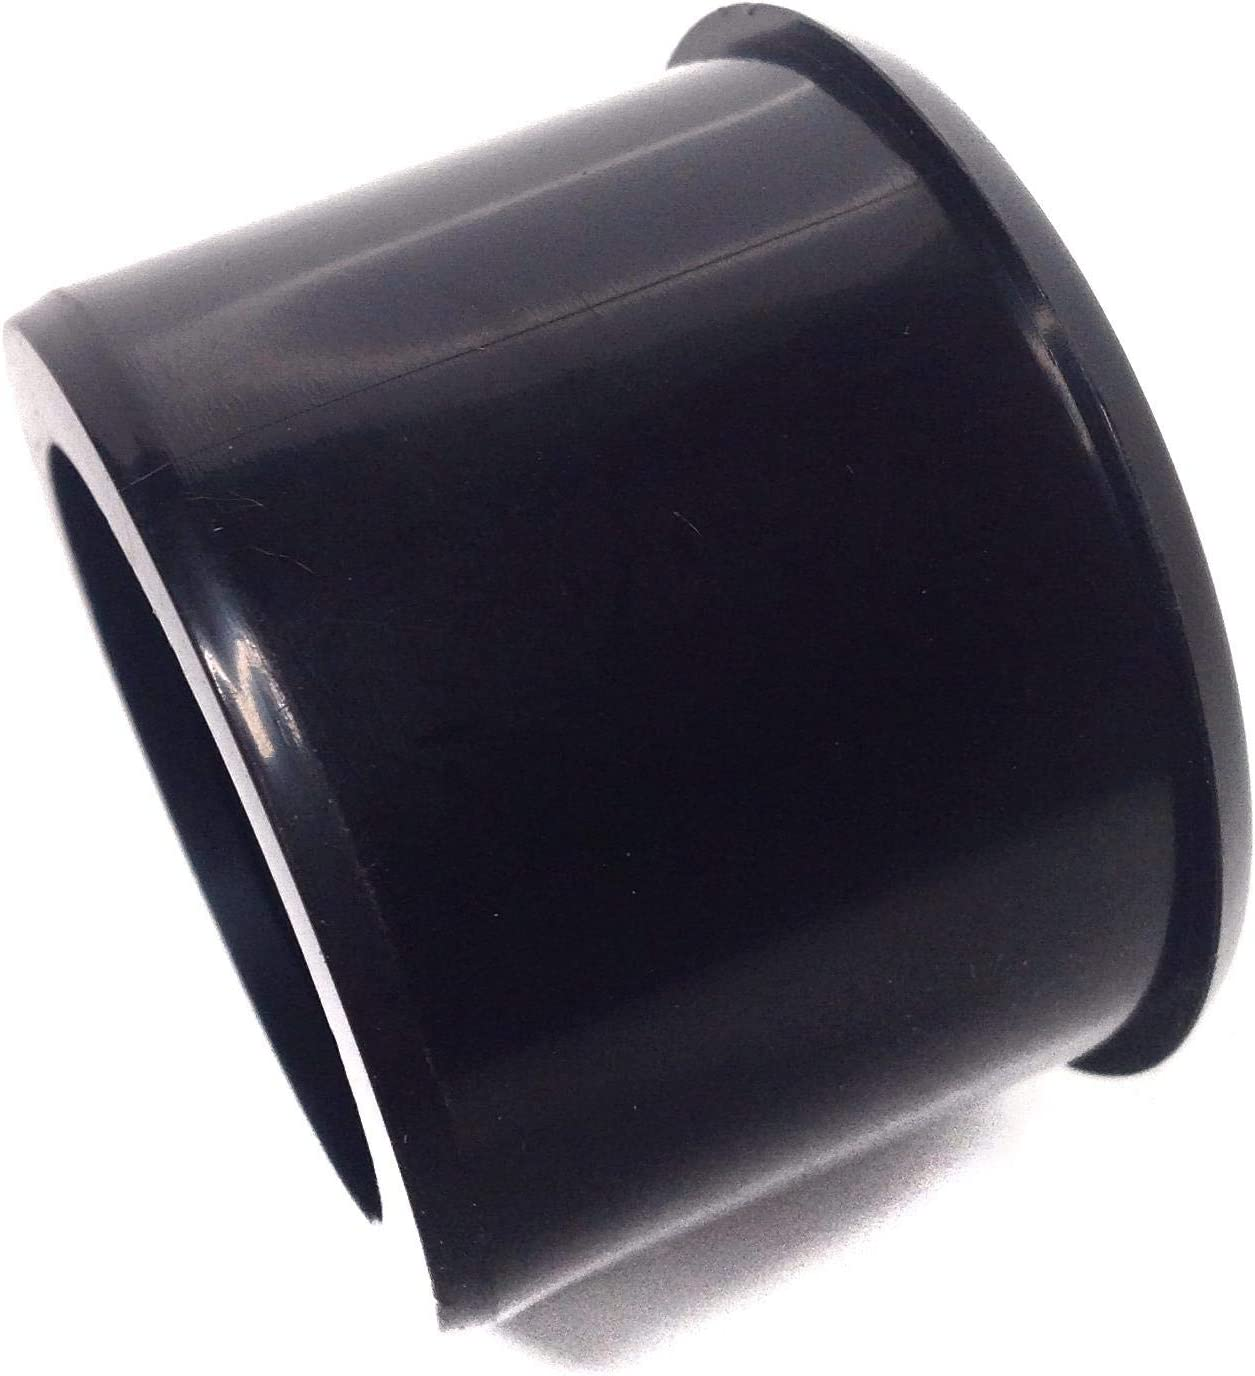 Solvent Weld Black 40mm 36mm x 32mm 43mm Waste Pipe Fitting Reducer